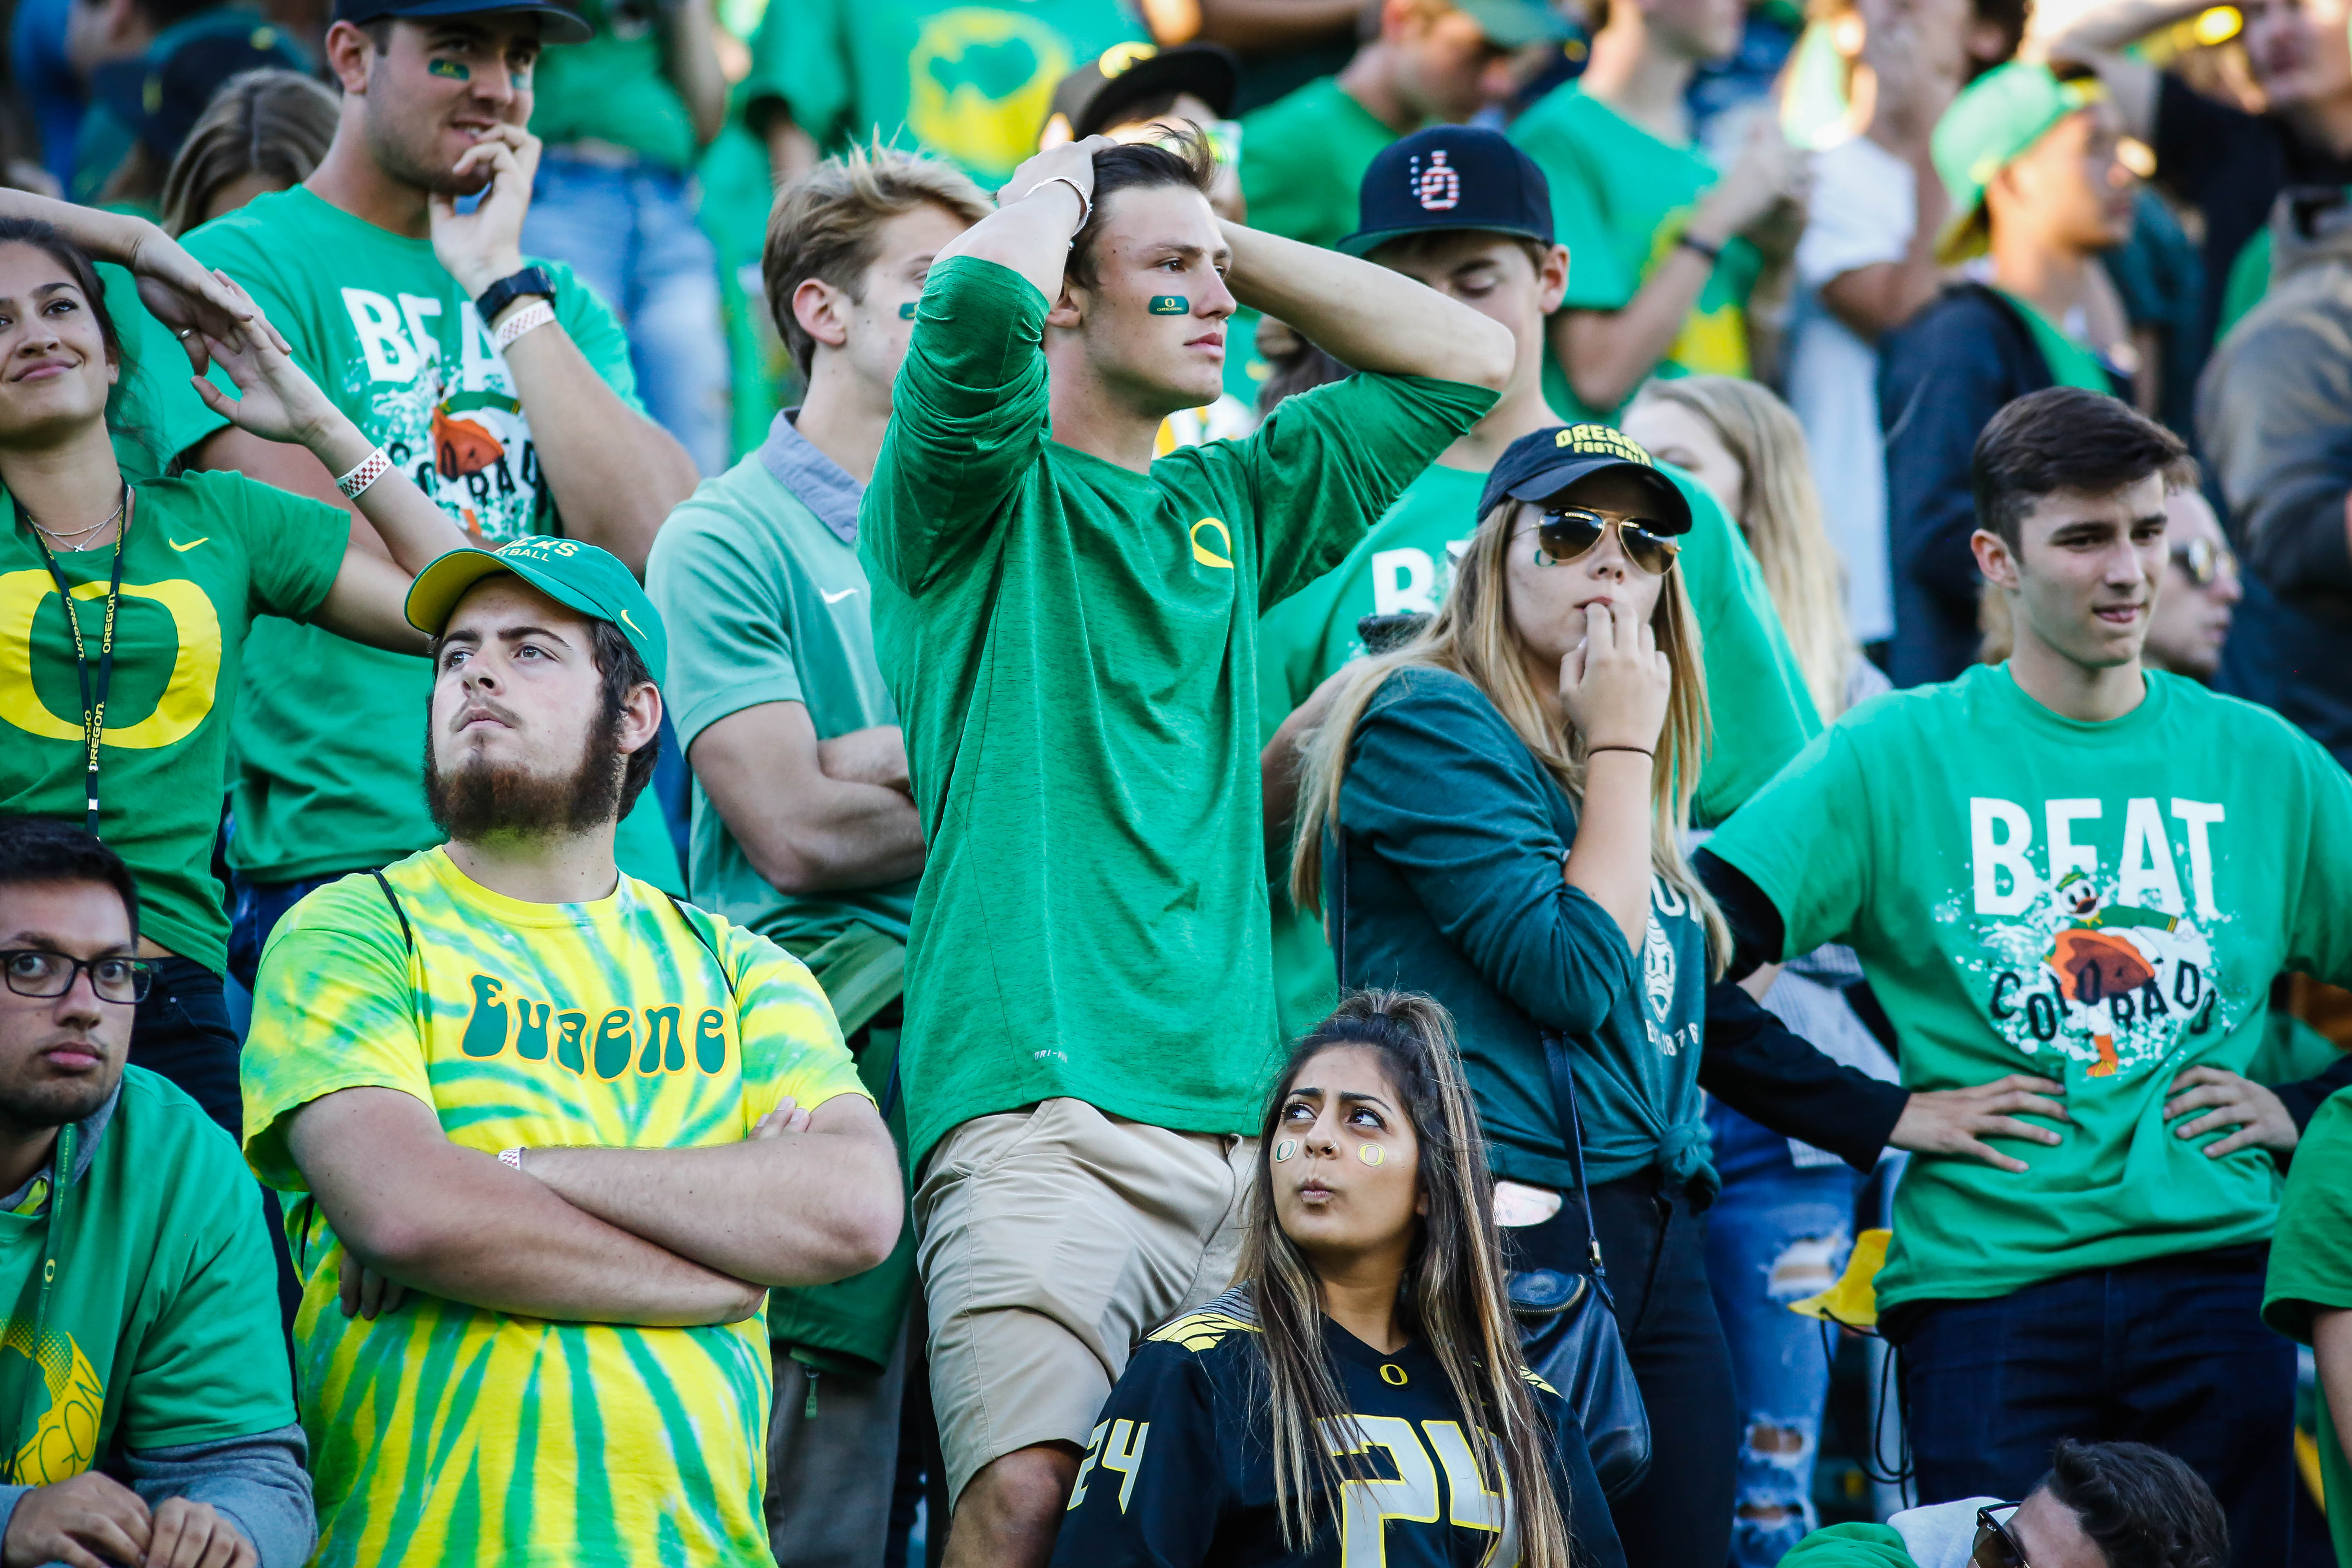 FILE - In this Sept. 24, 2016 file photo, Oregon fans react to the last second interception that sealed their loss against Colorado in an NCAA college football game in Eugene, Ore.  Veteran Oregon players addressed their teammates on a practice field on M